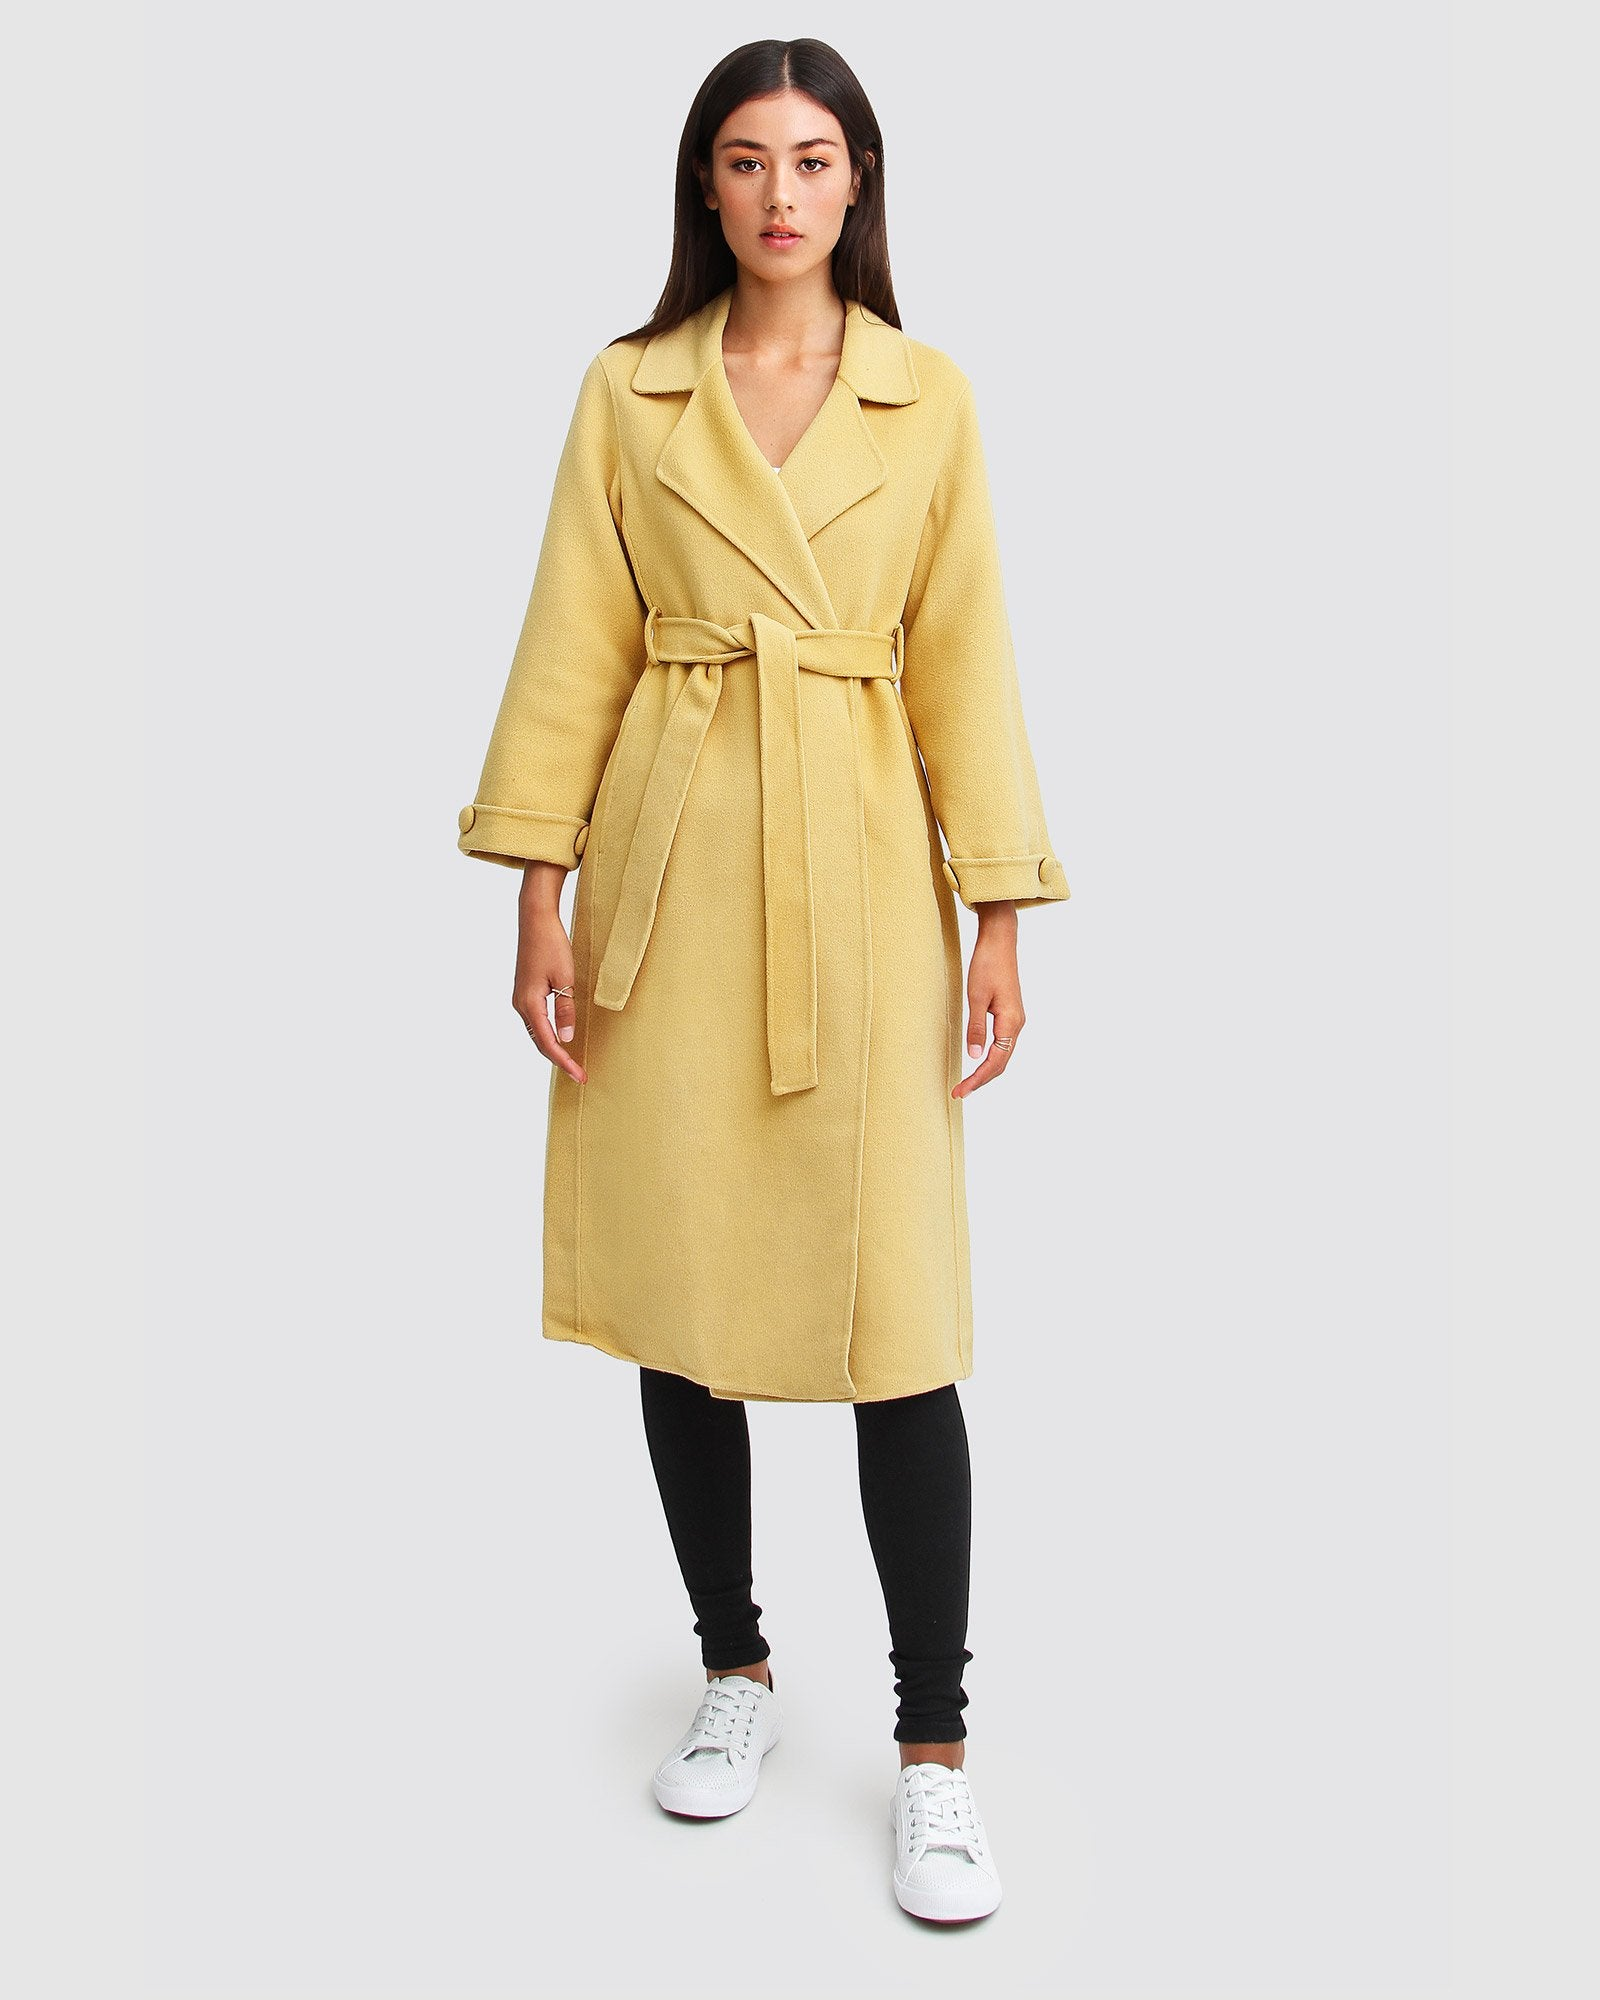 Stay Wild Oversized Wool Coat - Maize